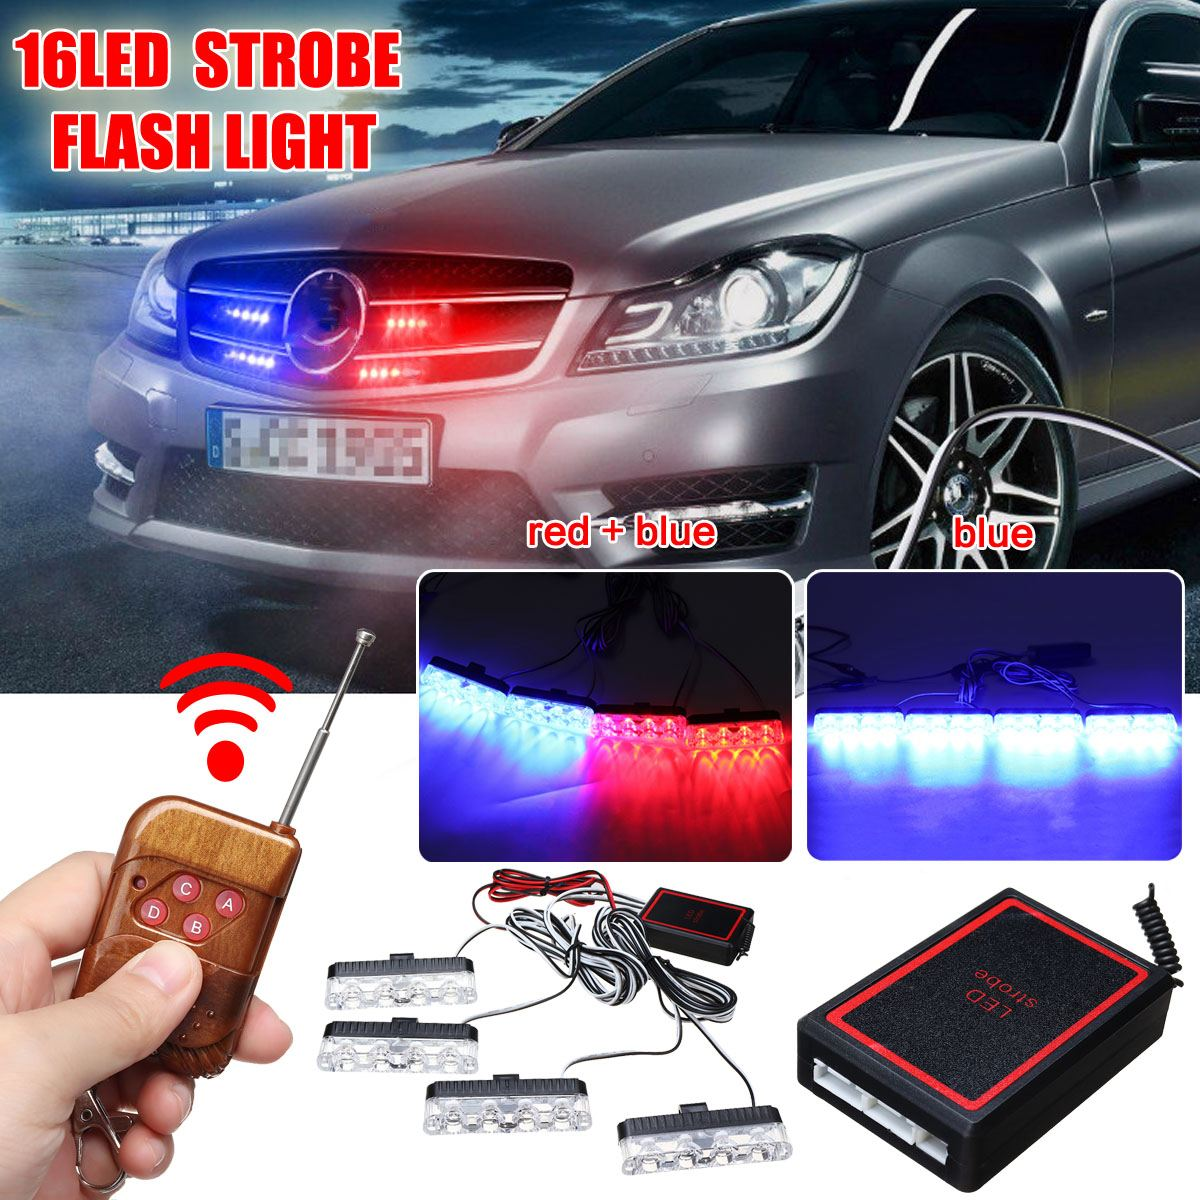 16 LED Strobe Flash Light 12V Car Truck Emergency Warning Lamp Day Running Polices Lights With Remote Control